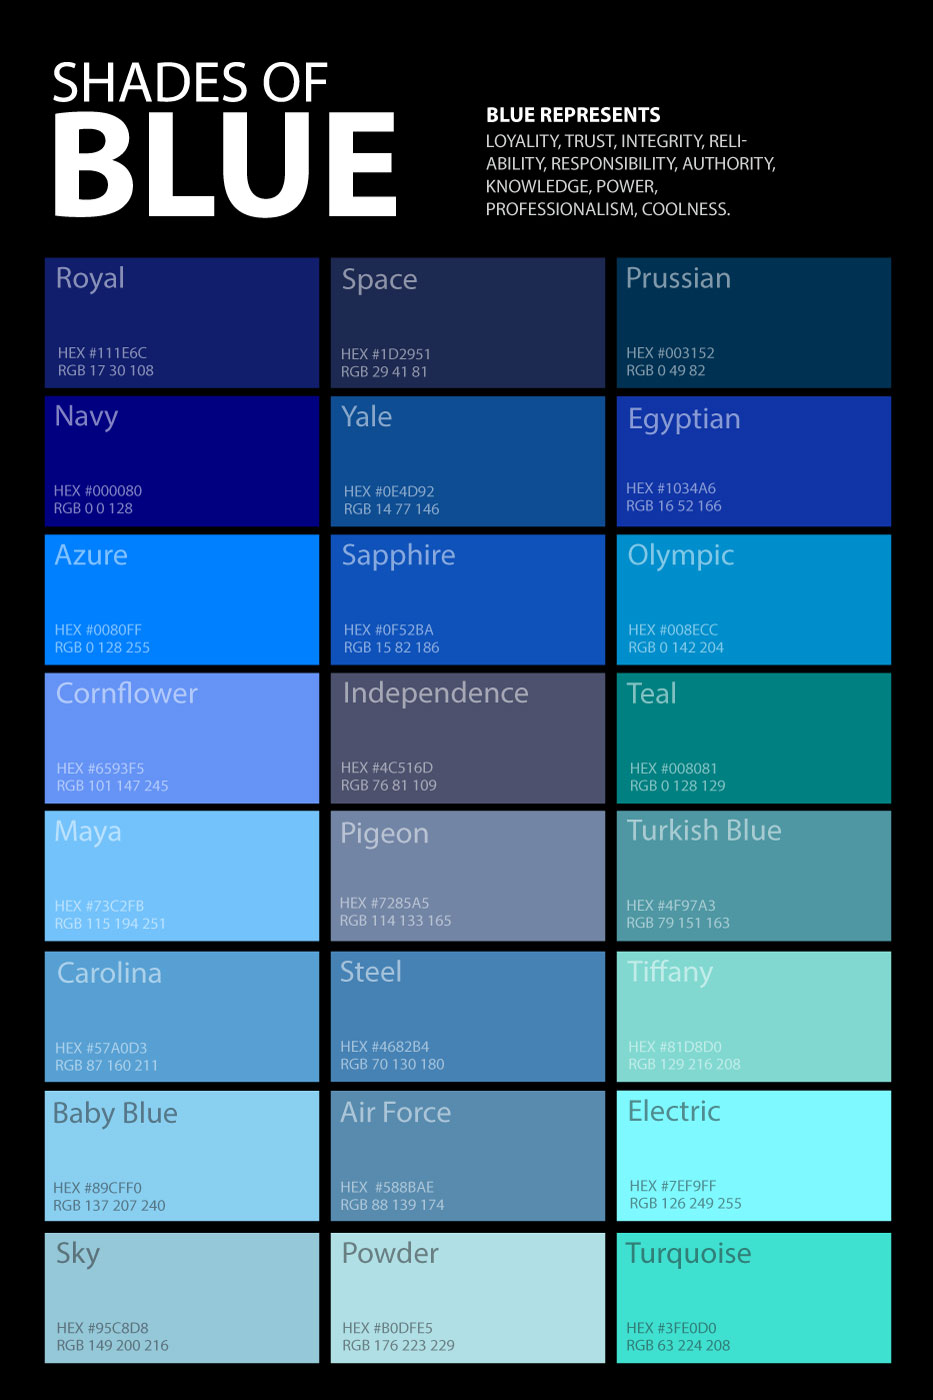 Shades of blue names shades of blue names delectable for Different shades of blue